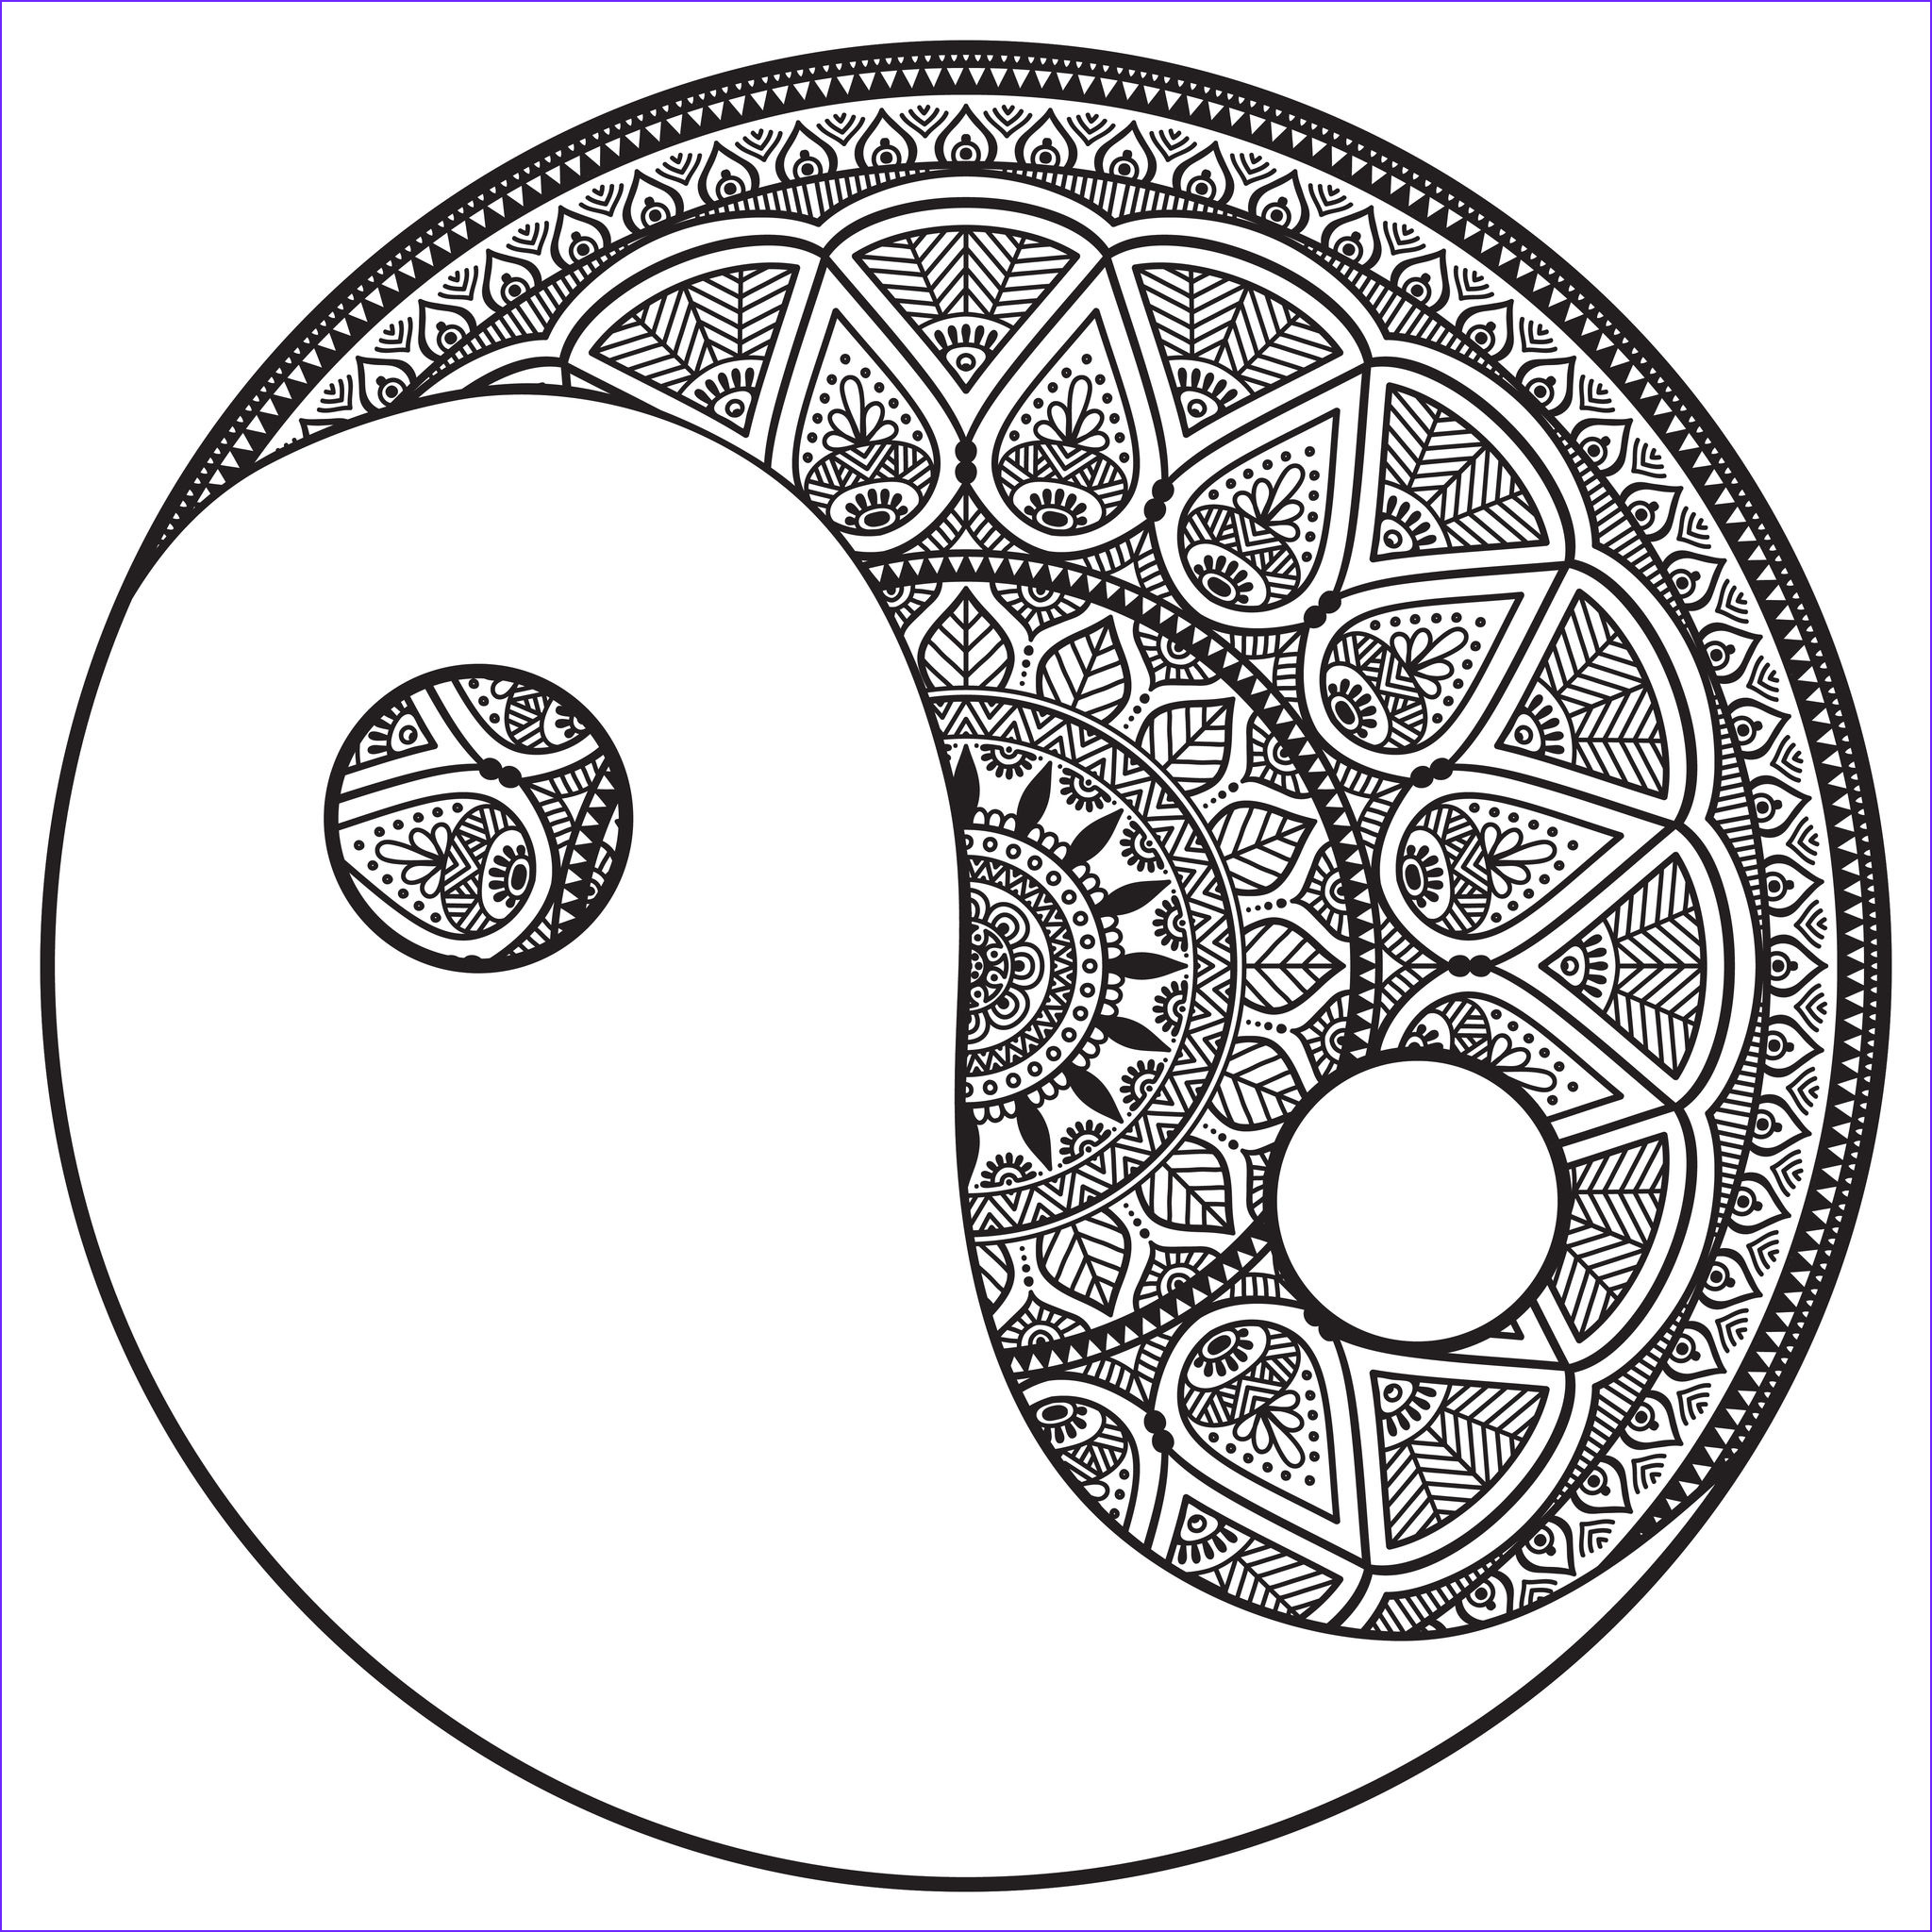 Adult Coloring Pages Mandalas Inspirational Collection Mandala Yin and Yang to Color M&alas Adult Coloring Pages